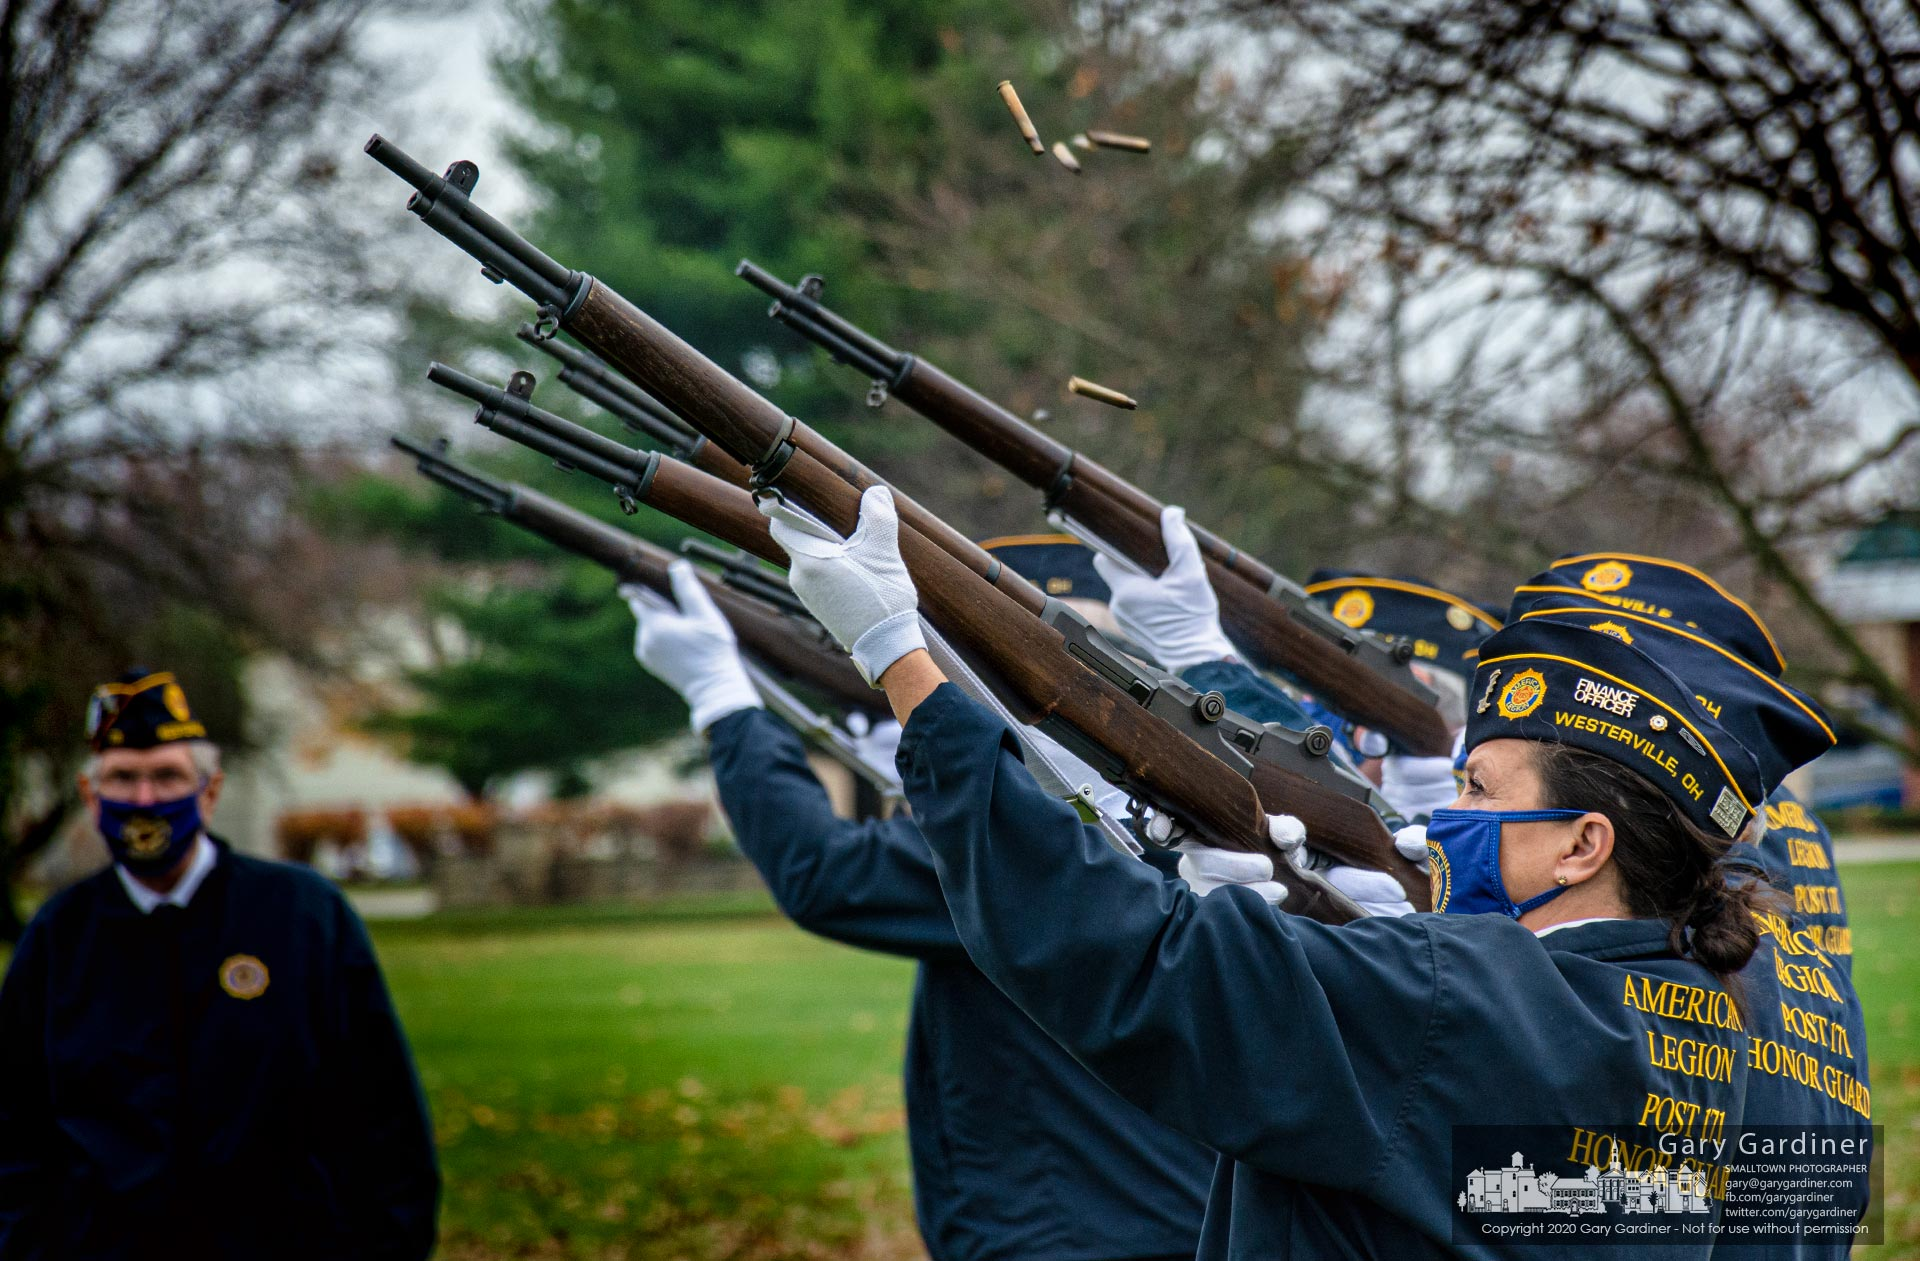 Shell casings fly through the air as the Westerville American Legion Honor Guard fires a 21-gun salute during dedication ceremonies for a new veterans ossuary at Northlawn Cemetery. My Final Photo for Nov. 11, 2020.